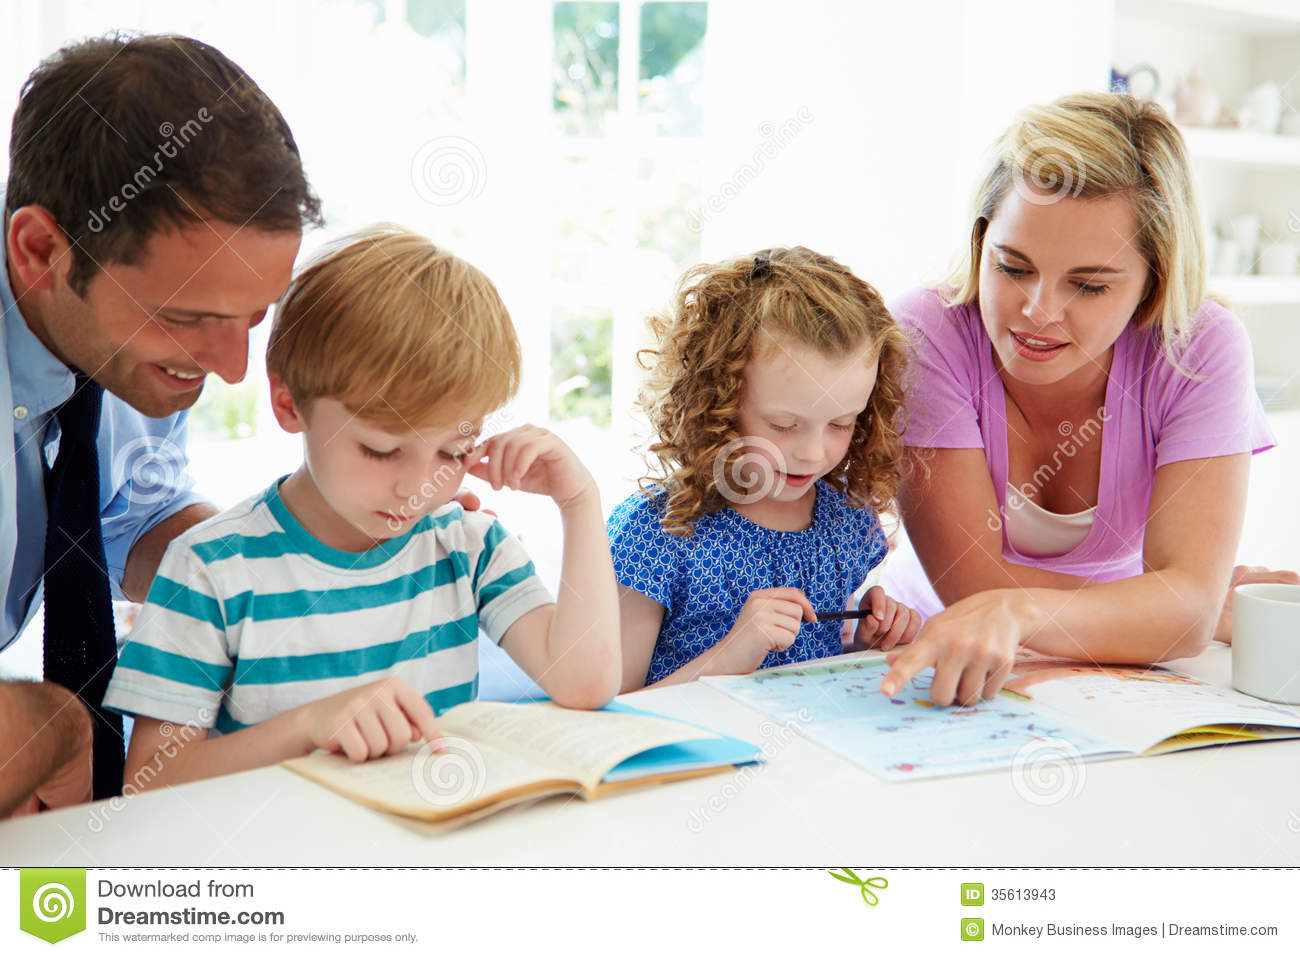 Homework - Helping Kids With Homework - Parents com